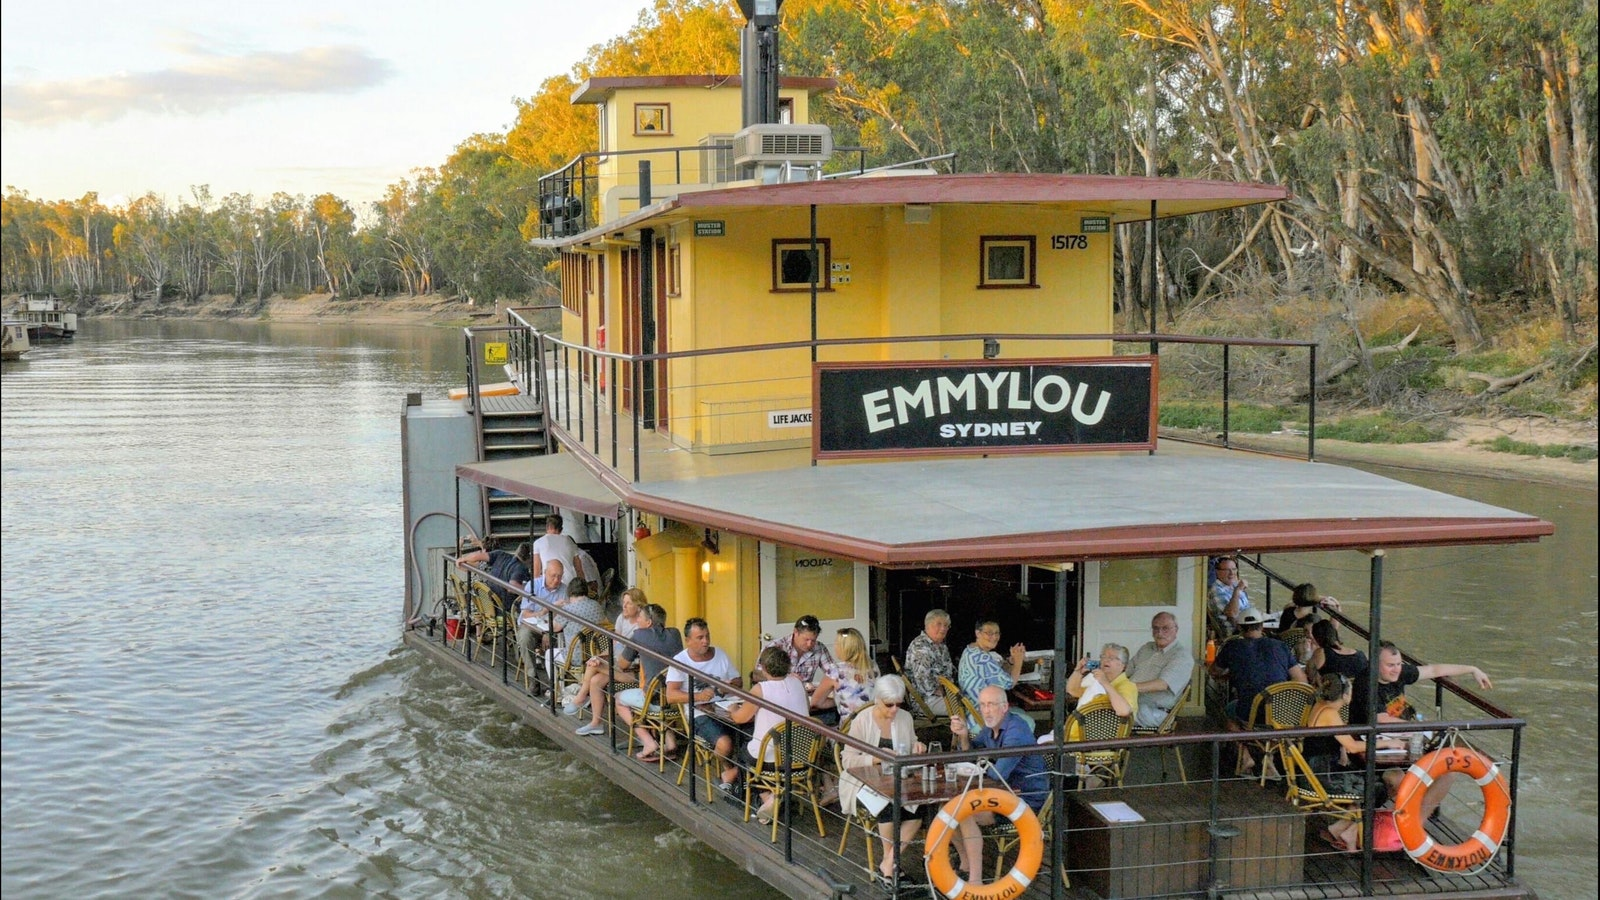 Lunch on PS Emmylou - Arial Shot